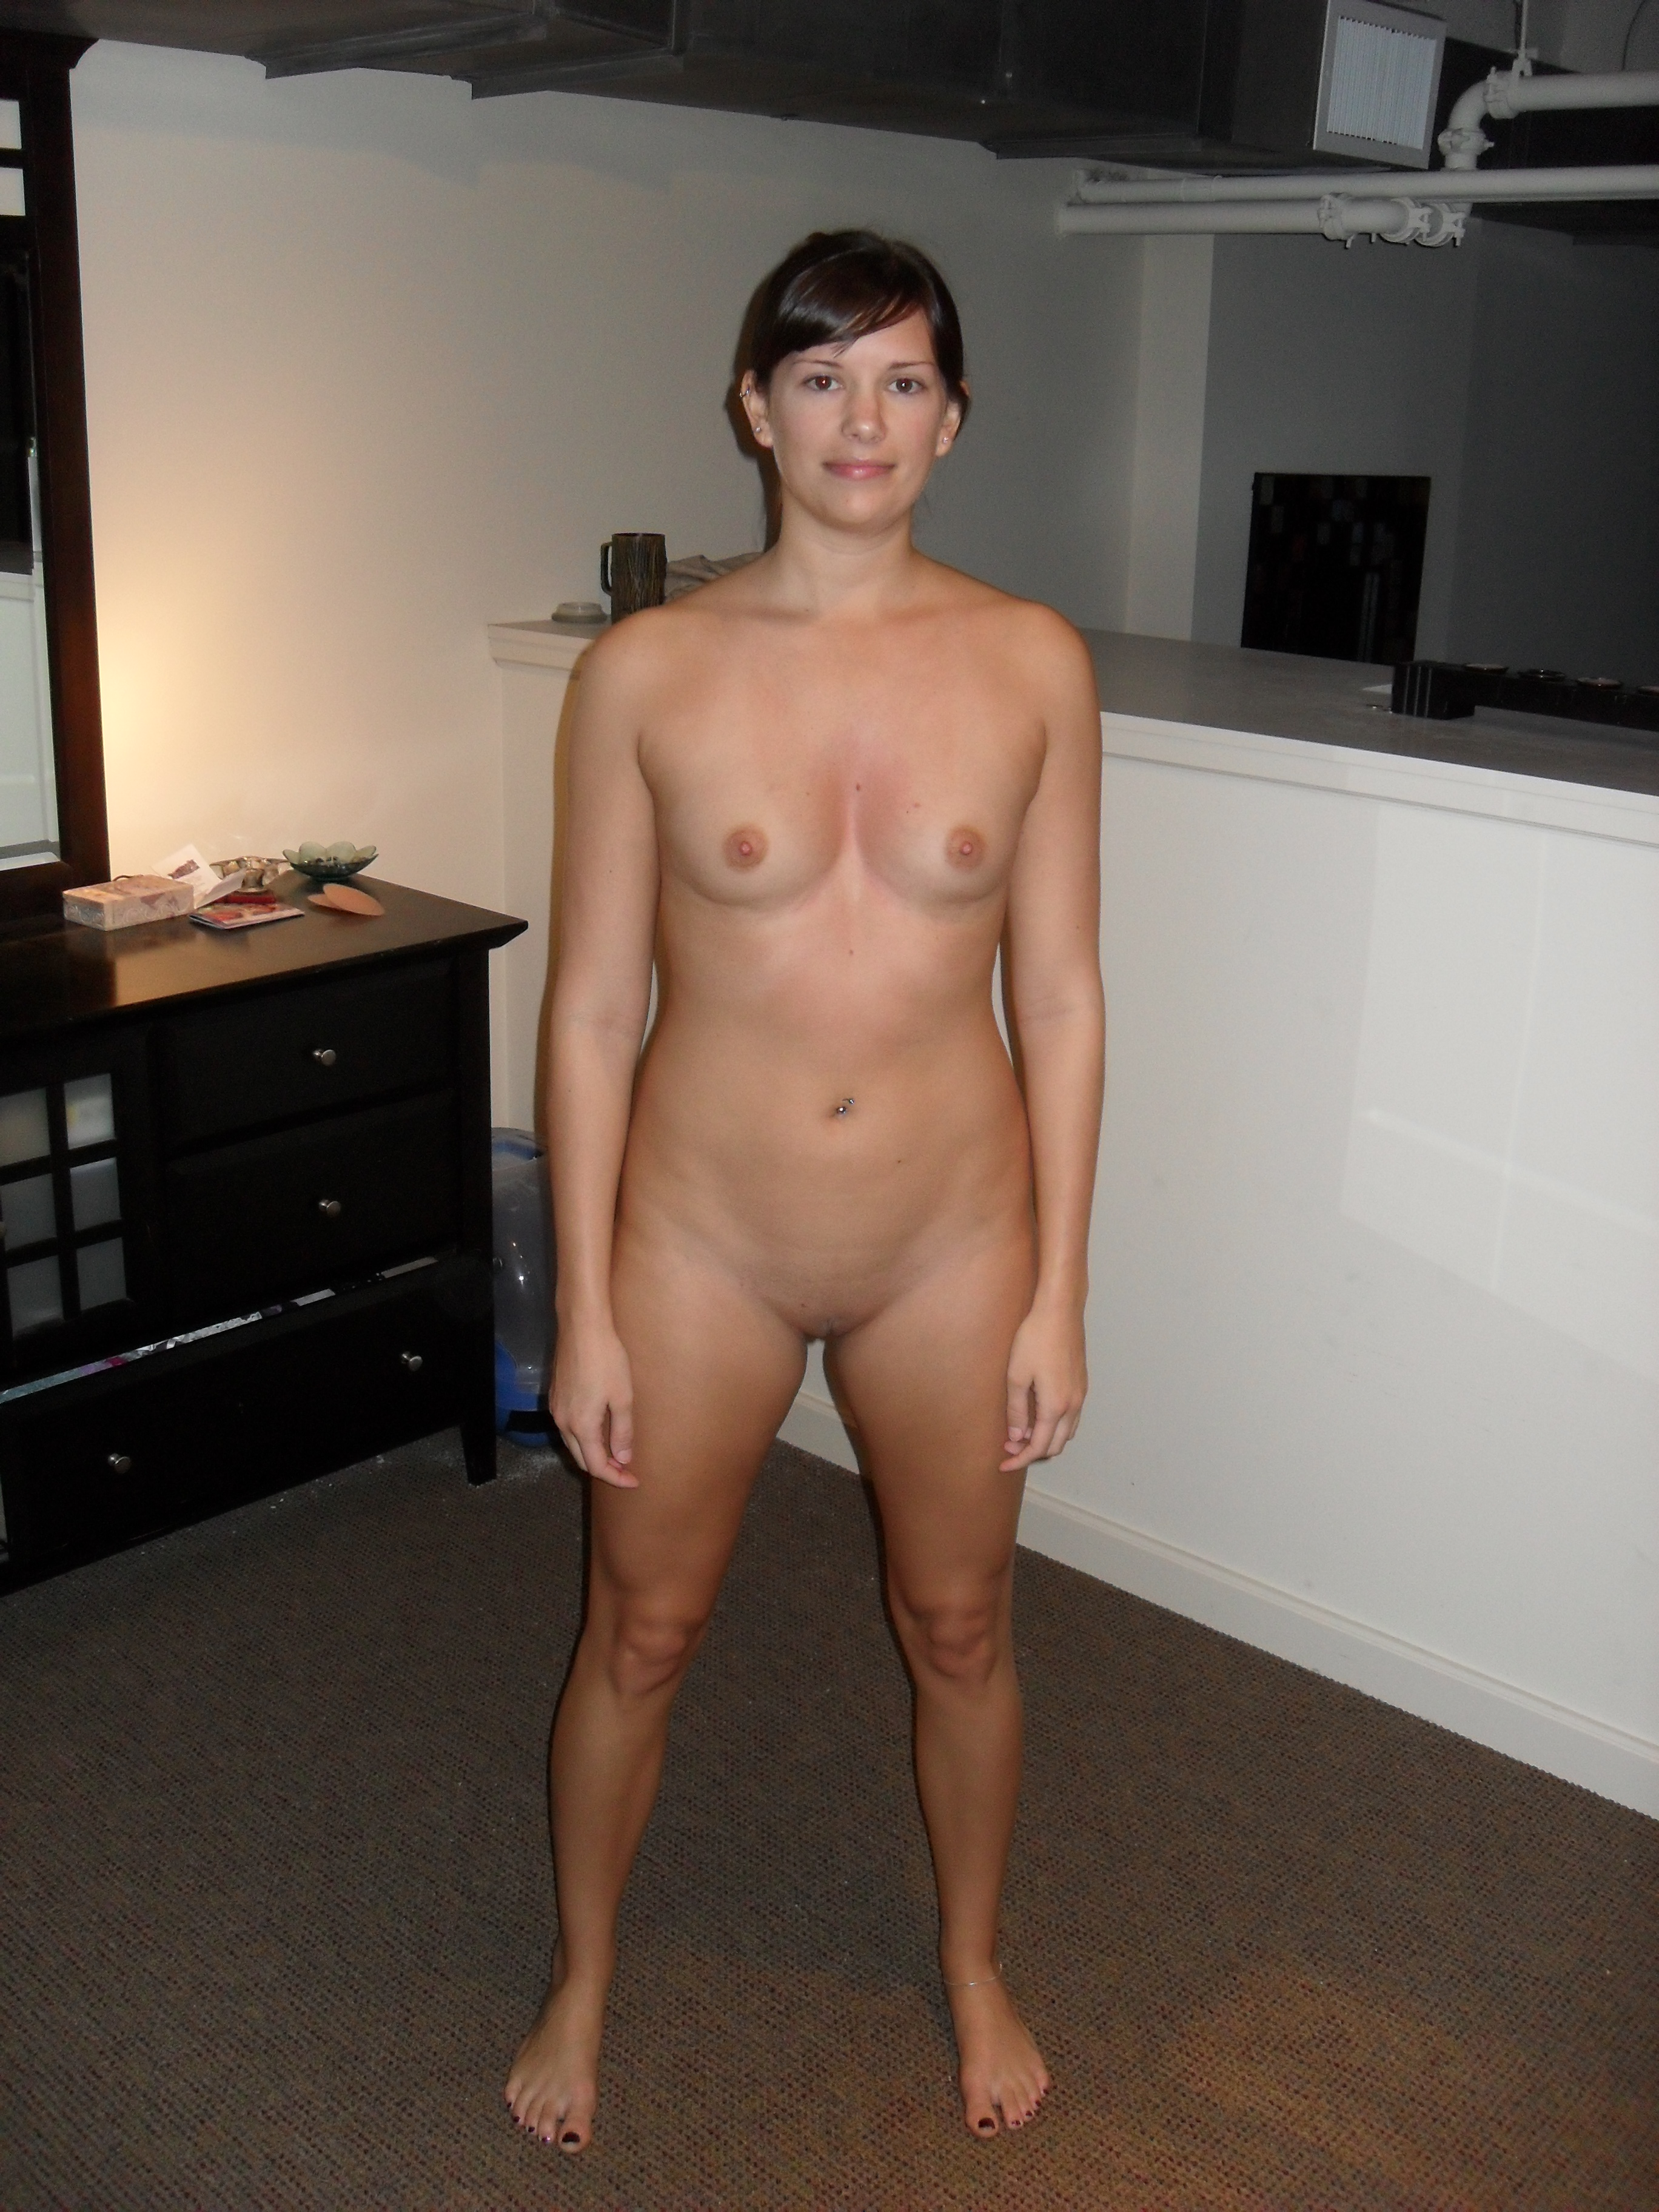 Flat chested mature women naked — img 1